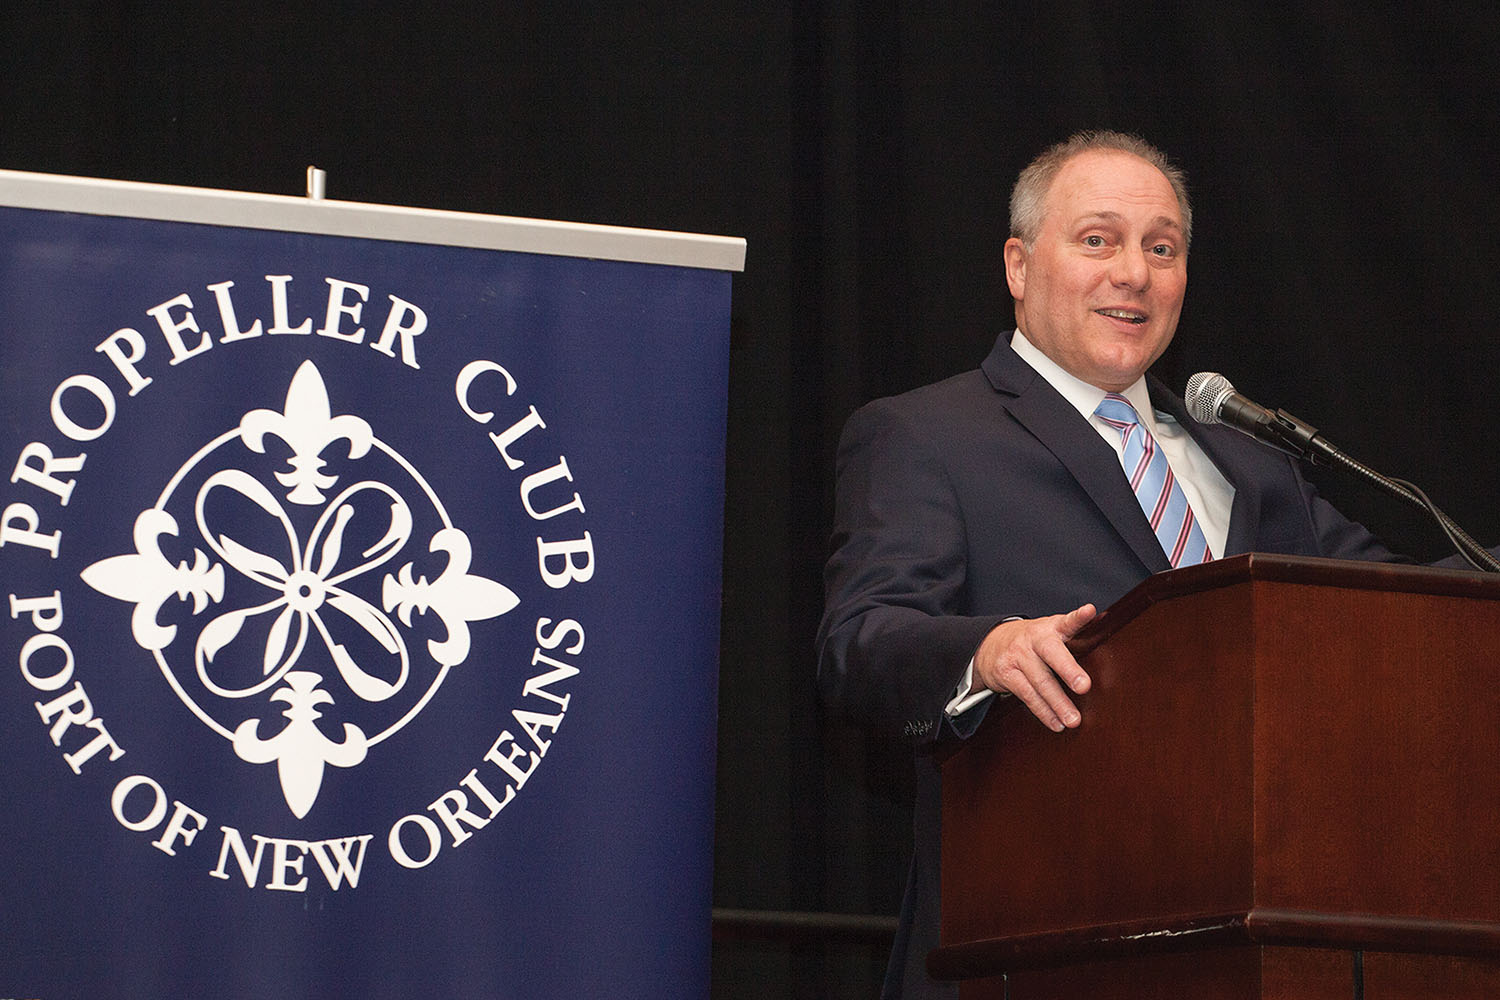 Nola Propeller Club Honors Scalise